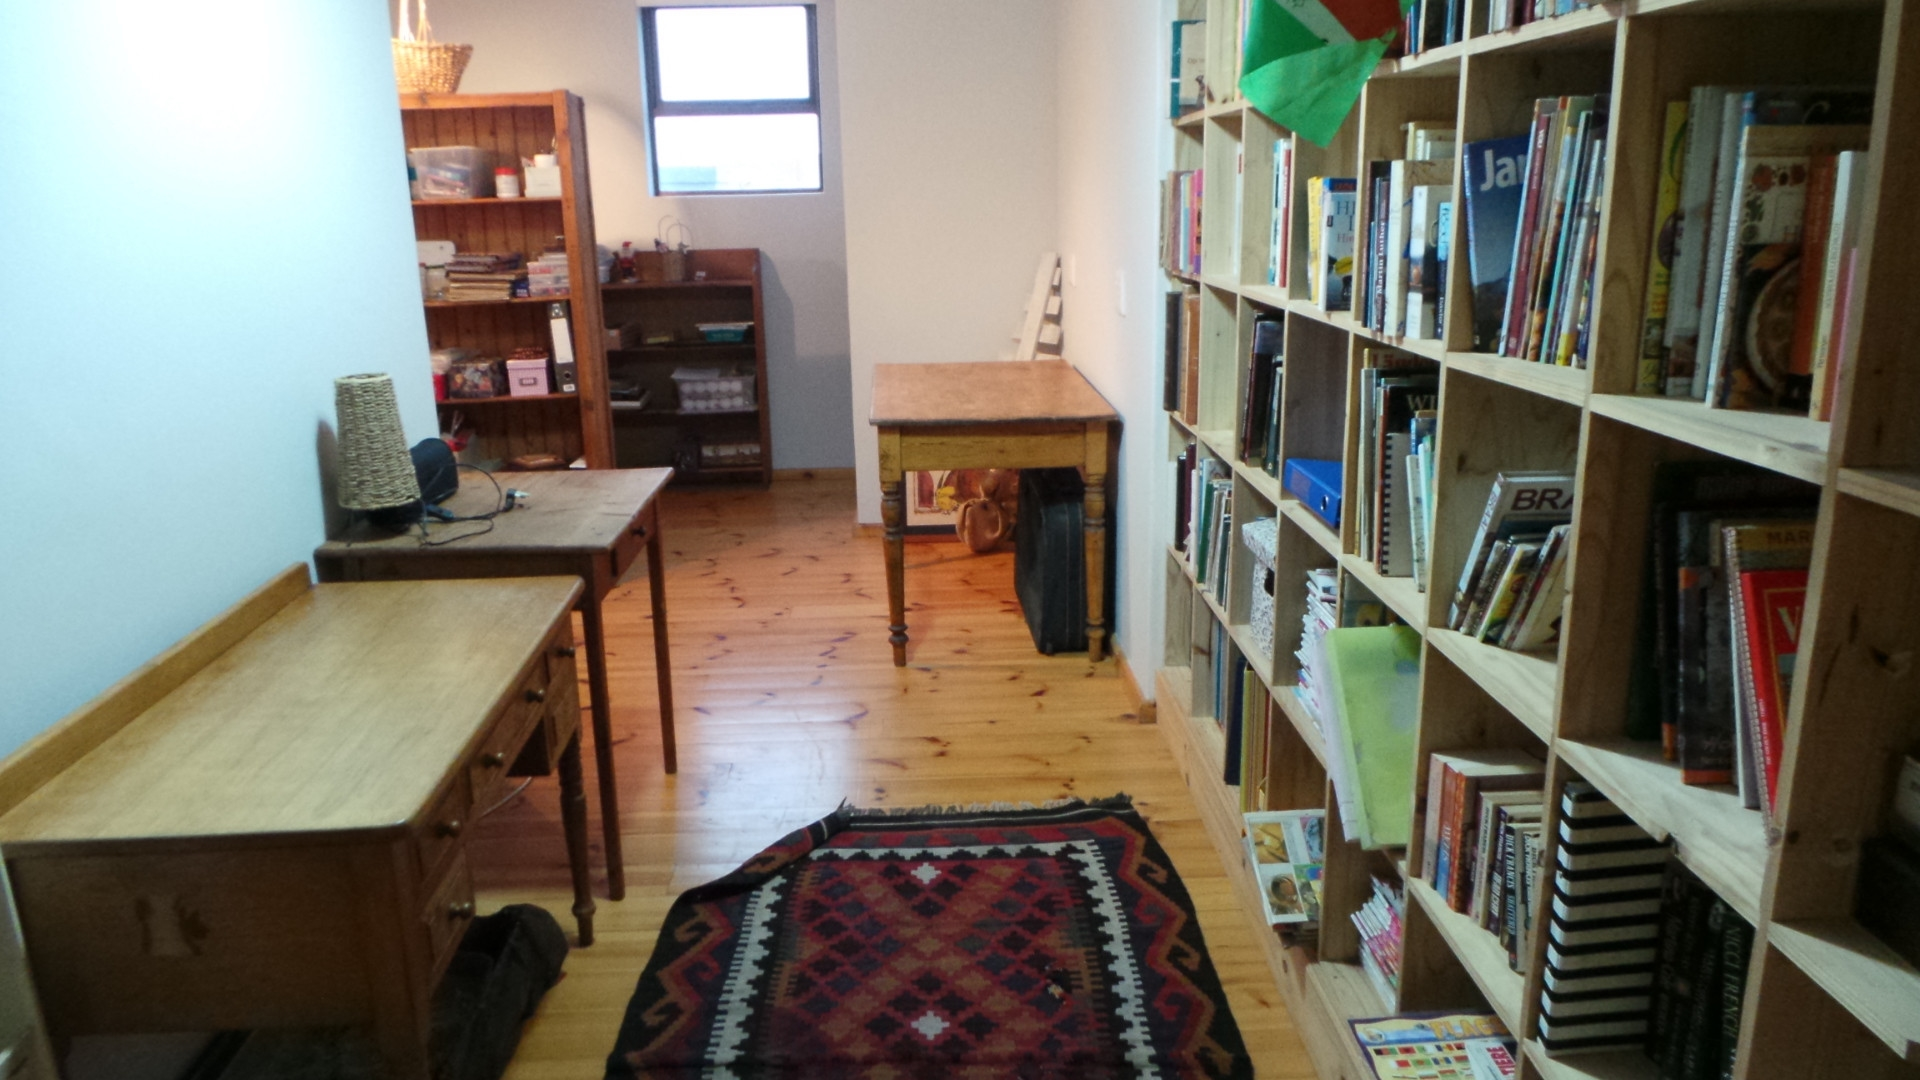 TV room Library